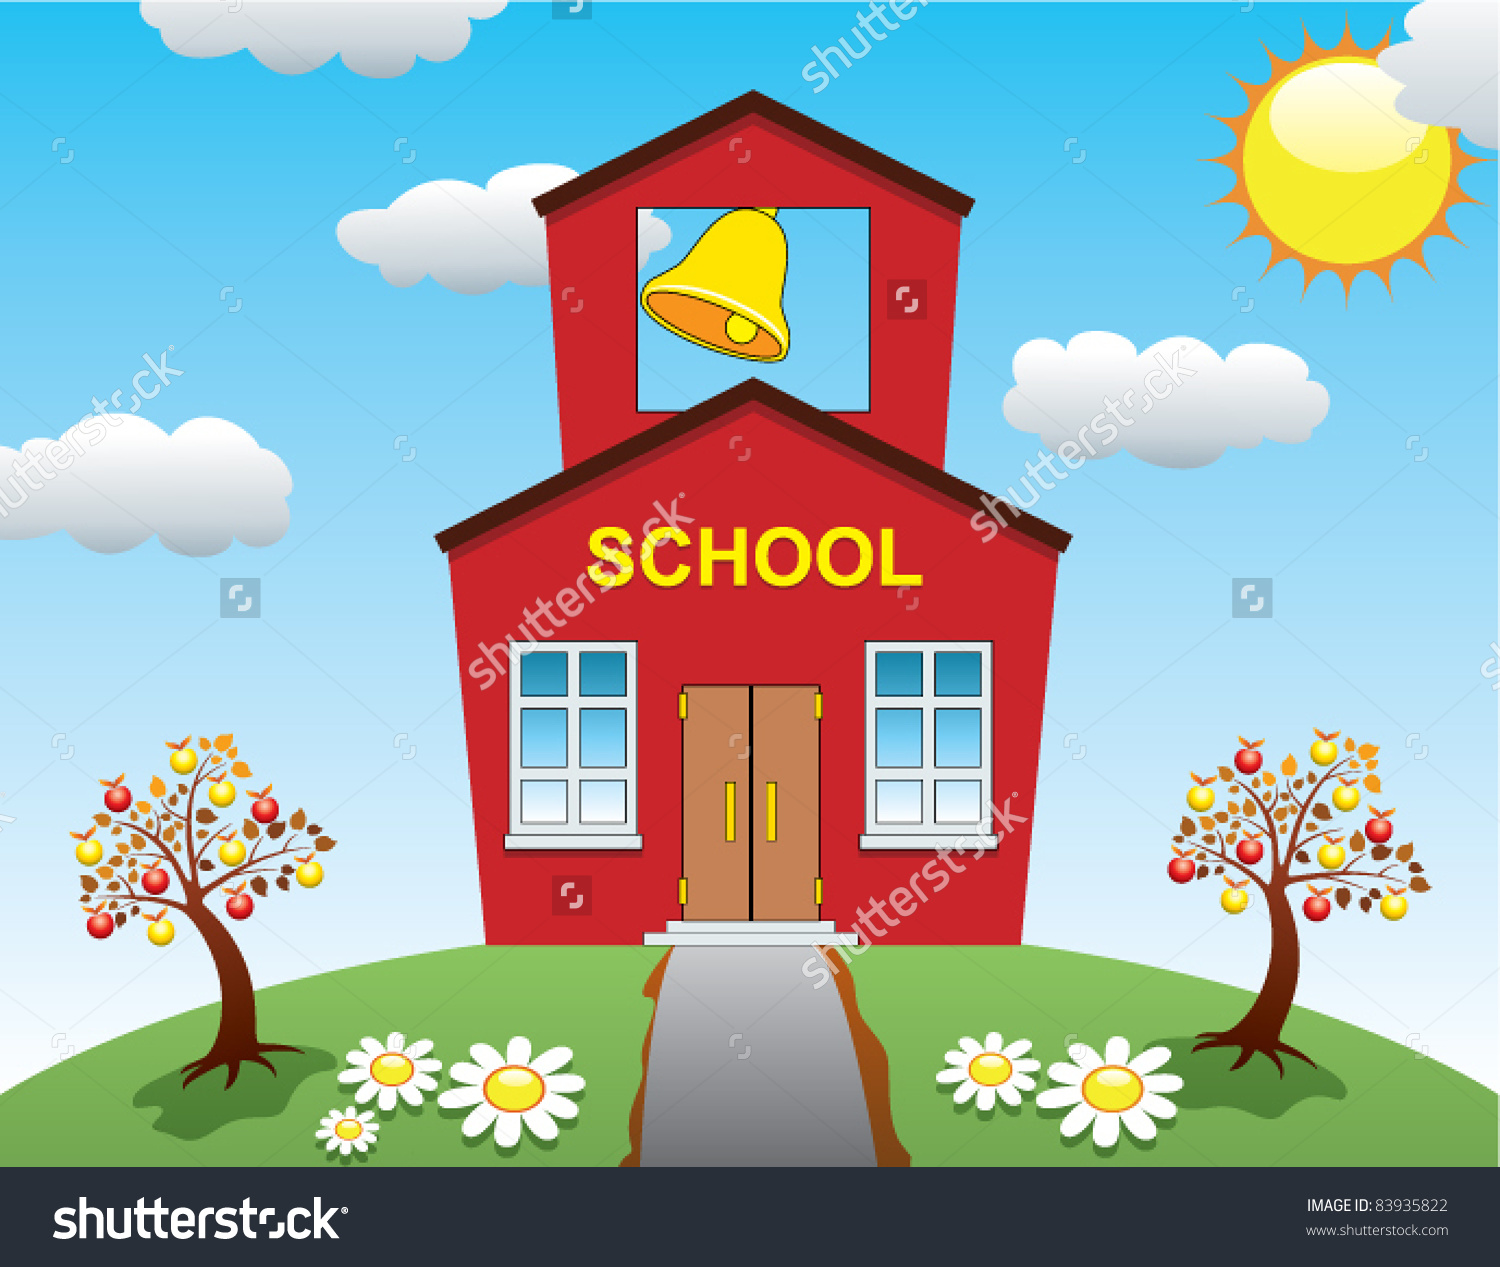 Storybook schoolhouse png free Schoolhouse with tree clipart - ClipartFest png free